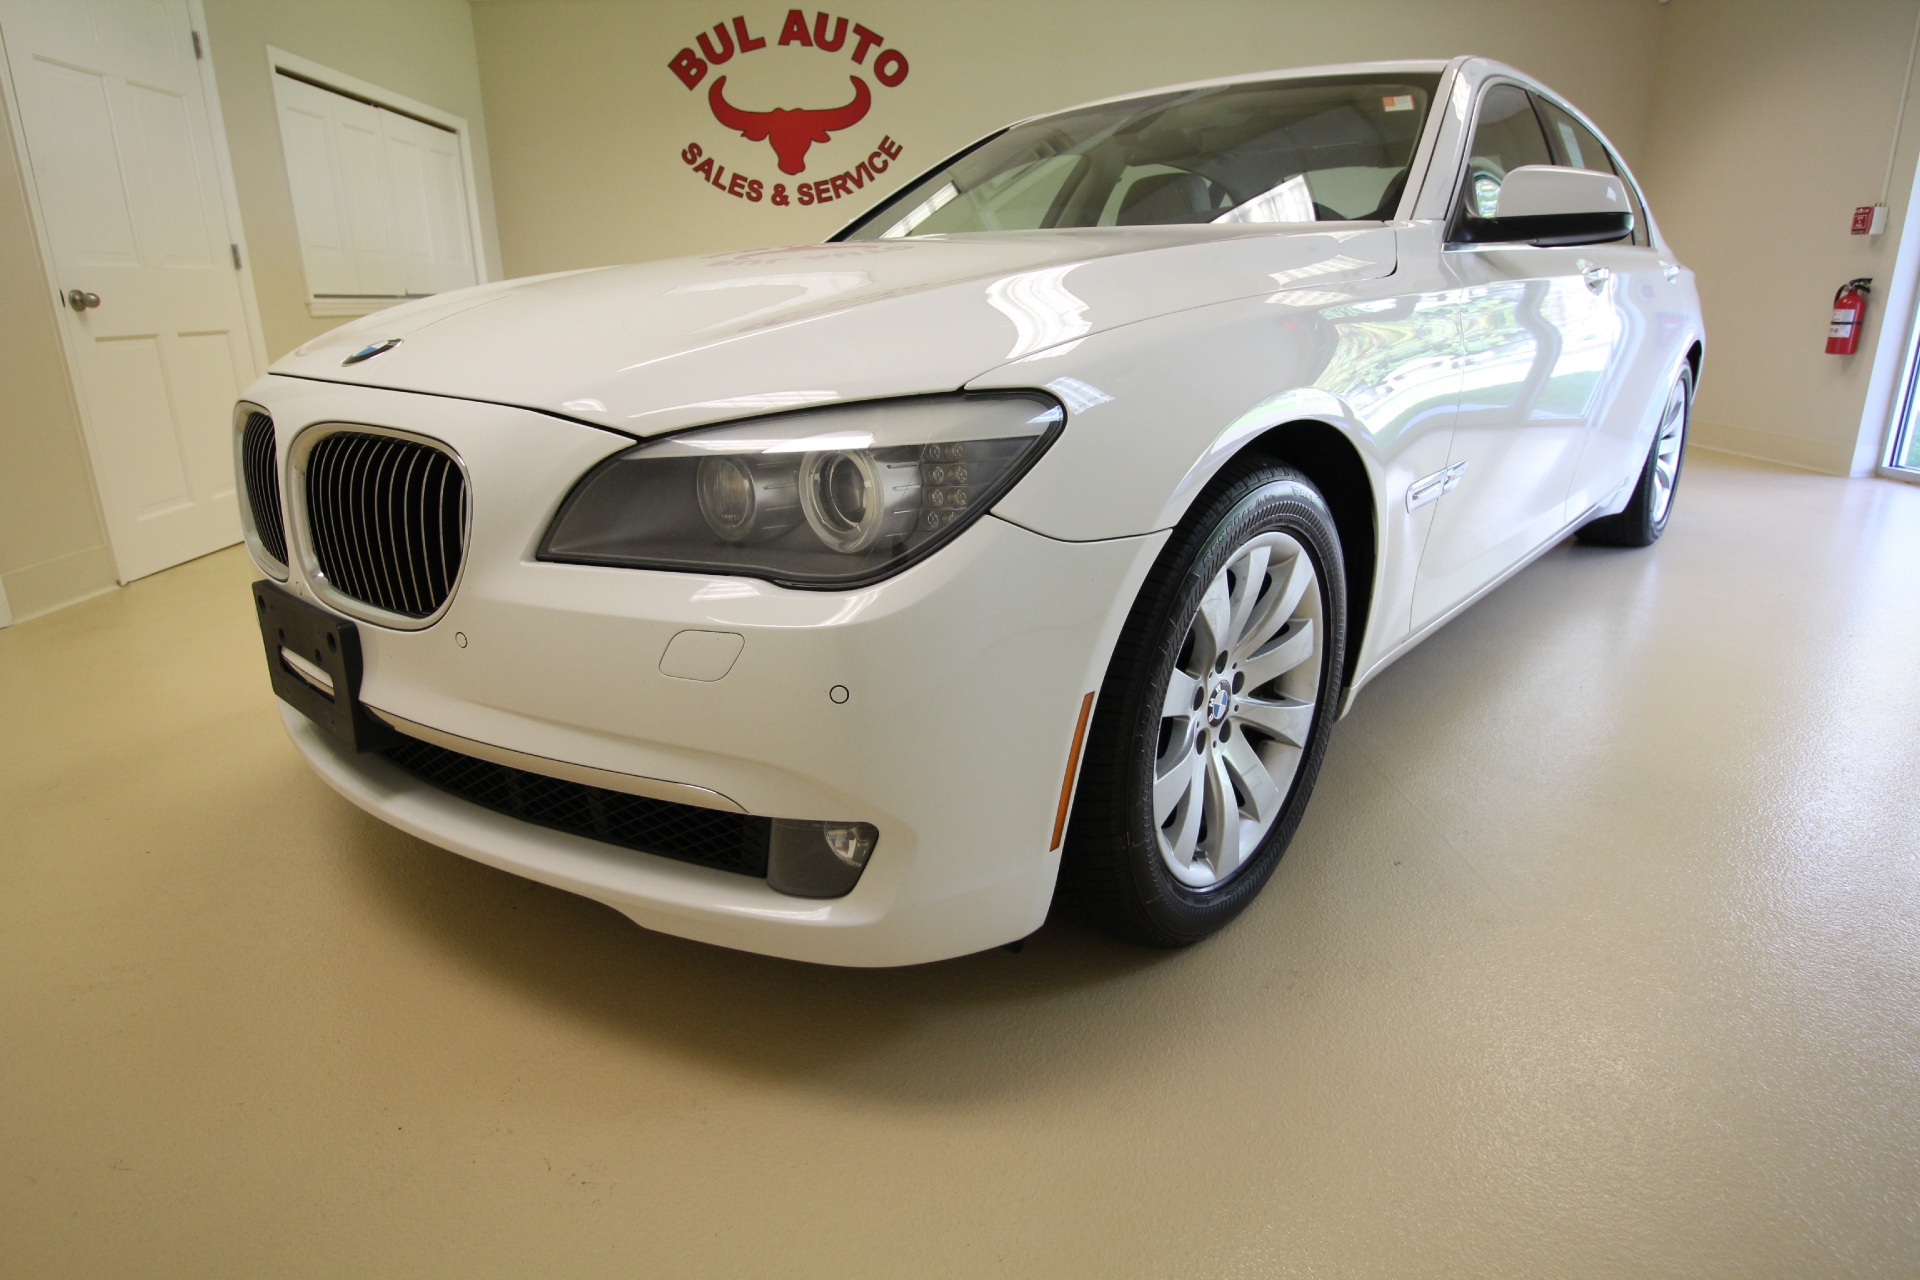 2010 bmw 7 series 750li xdrive awd luxury seating package stock 16224 for sale near albany ny. Black Bedroom Furniture Sets. Home Design Ideas